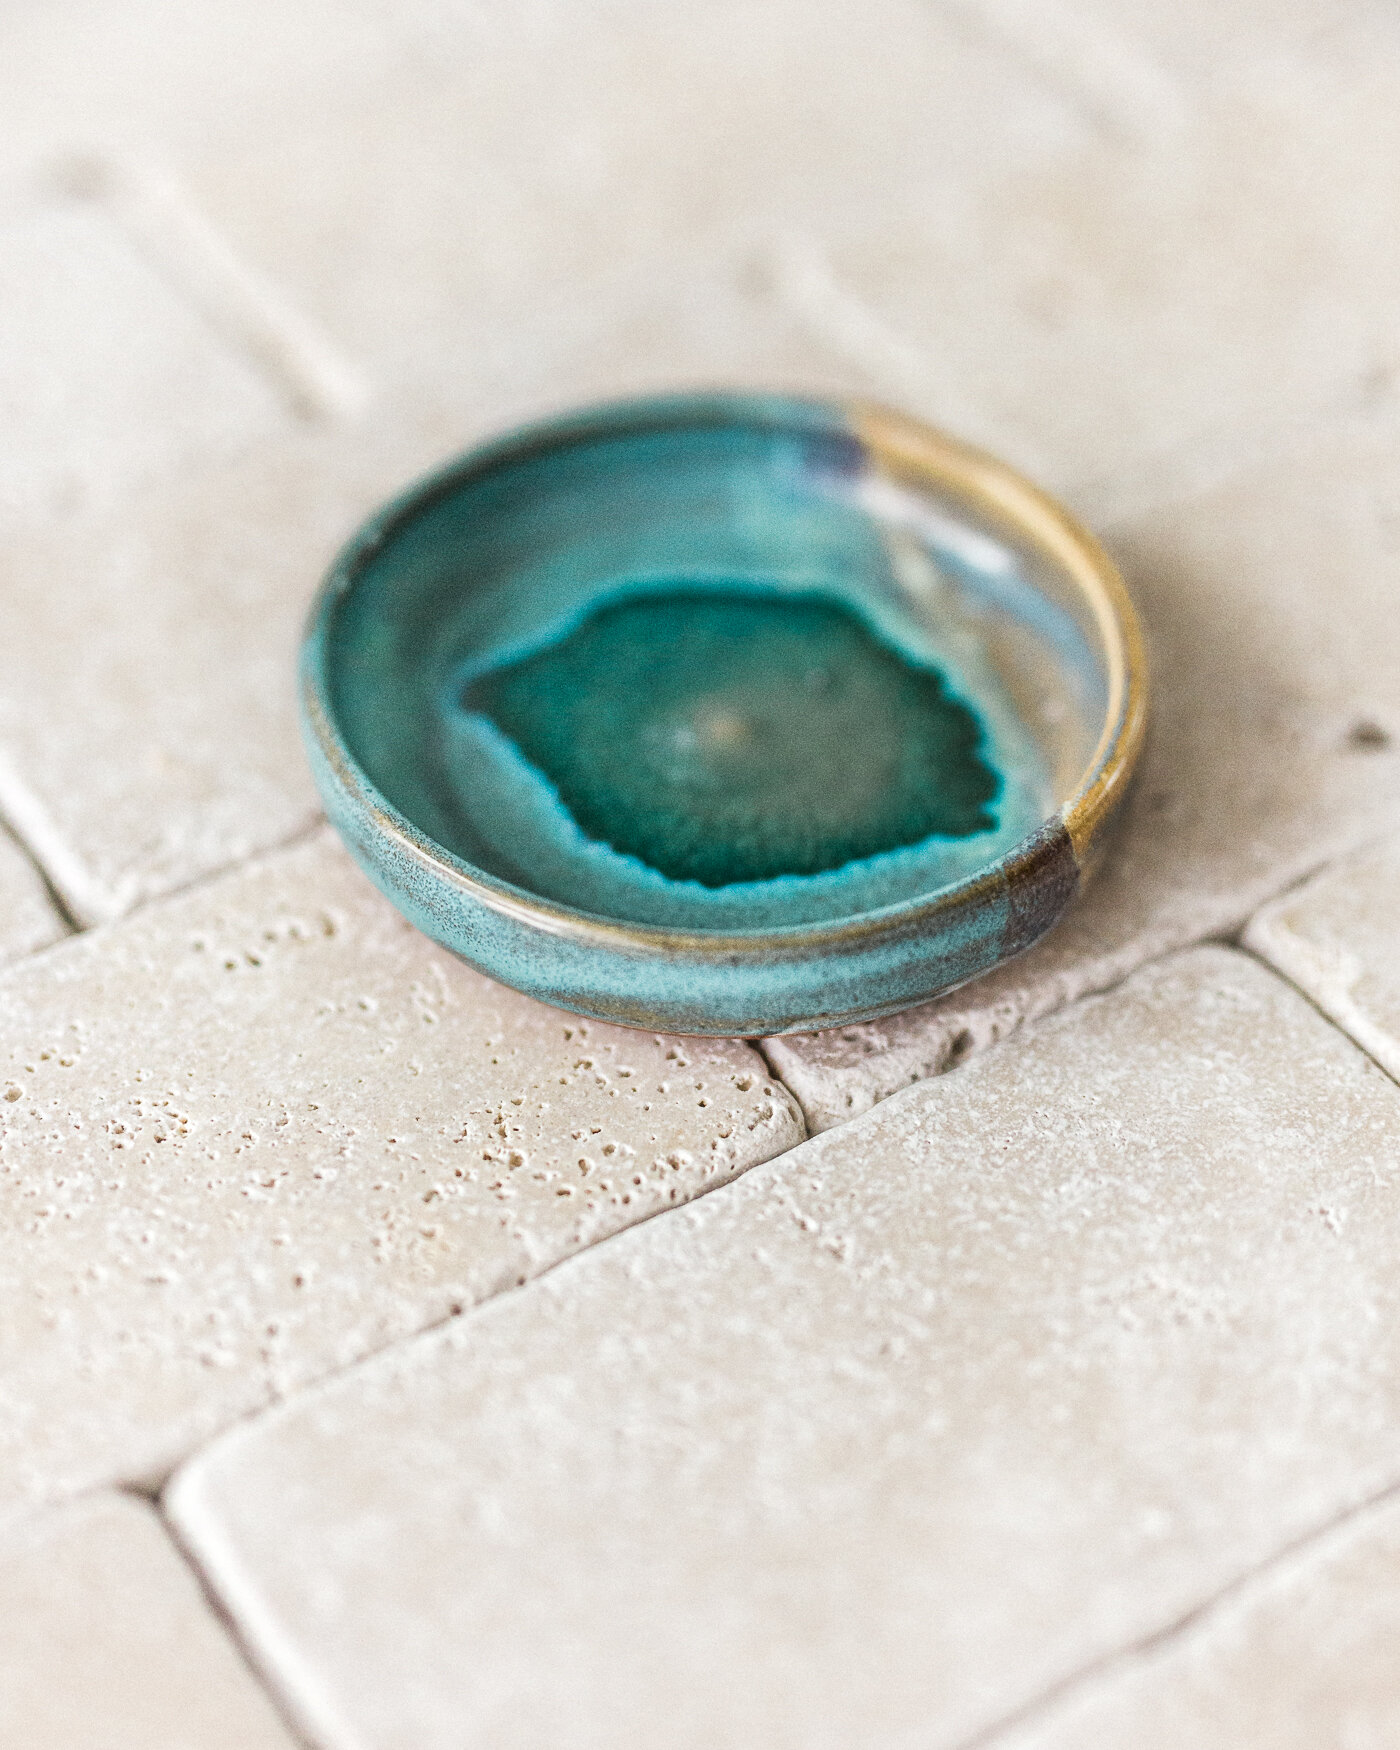 Voyage + Heart - Product Photographers - Commercial Photographers - Art directors - Creative Styling and Product Photography for Artisans and Makers - Wheel Thrown Pottery - Ceramic Artist - Handmade Dish Product Photography